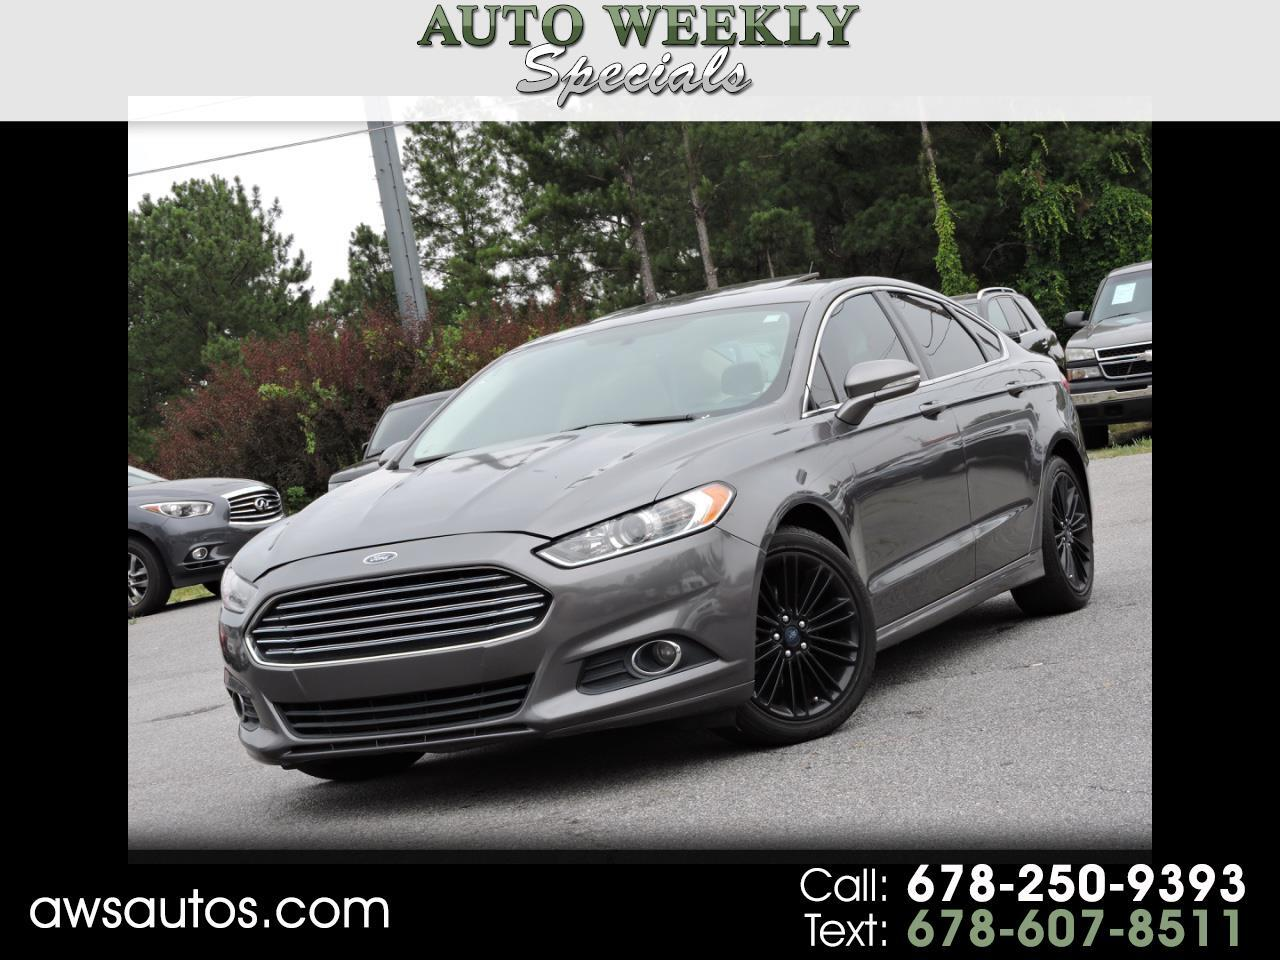 2014 Ford Fusion 4dr Sdn I4 SEL